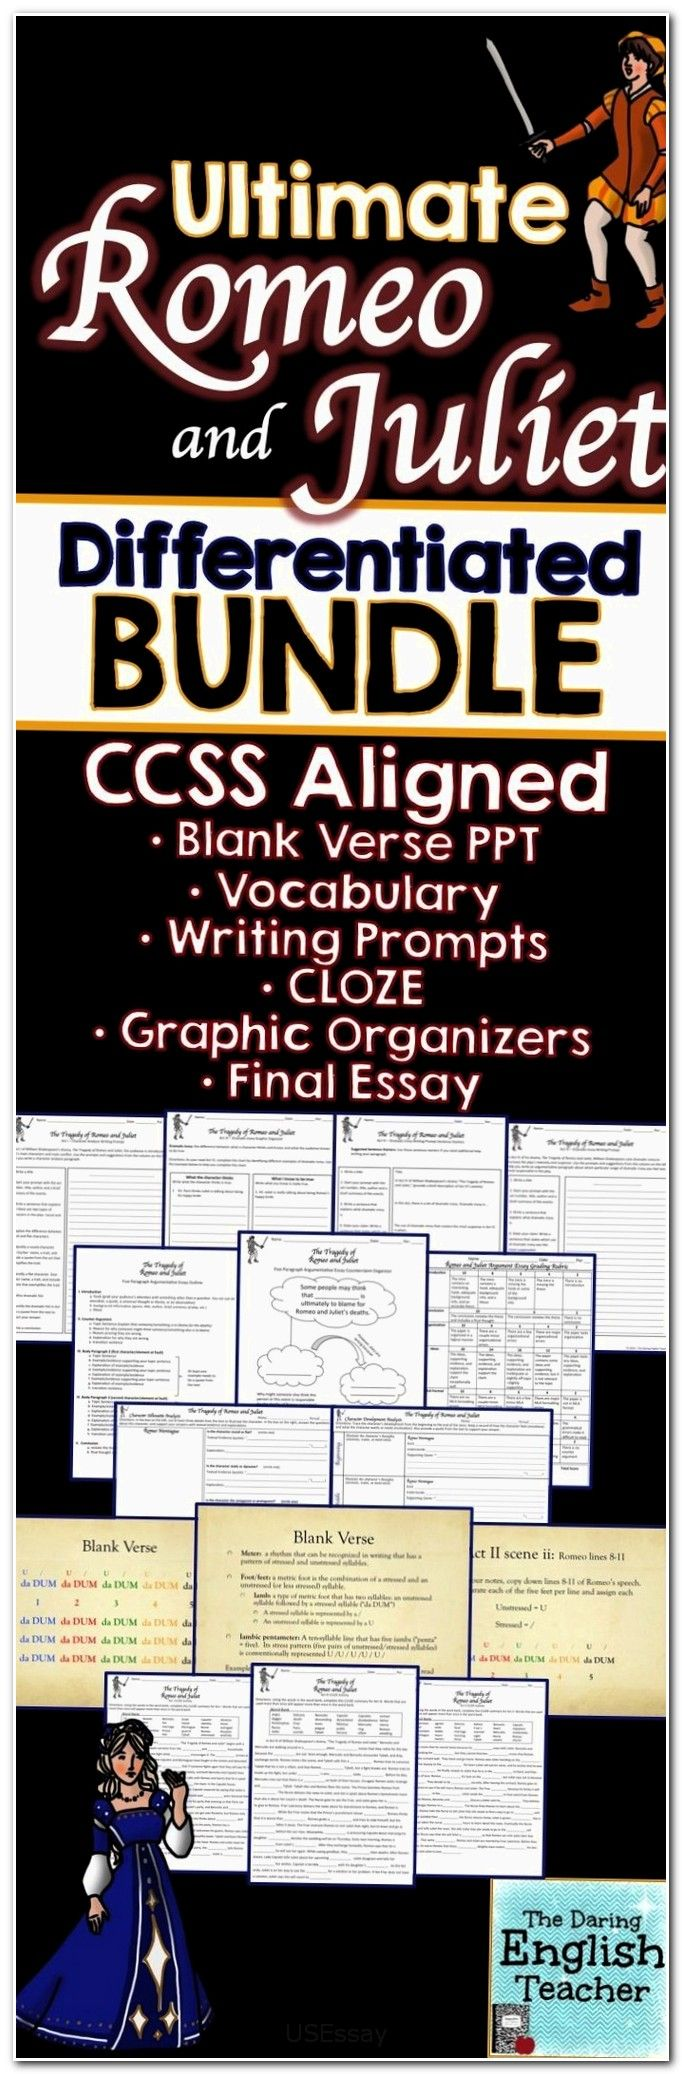 #essay #wrightessay essay latest topics, developing thesis statements, interesting persuasive speech, writing an opinion paper, mba thesis topics, how to teach paragraph writing, persuasive speech topics interesting, outline generator, what goes into a introduction paragraph, what to put in a personal statement, essay fixer free, research paper methodology, sample of apa essay, dissertation outline, essay writers canada